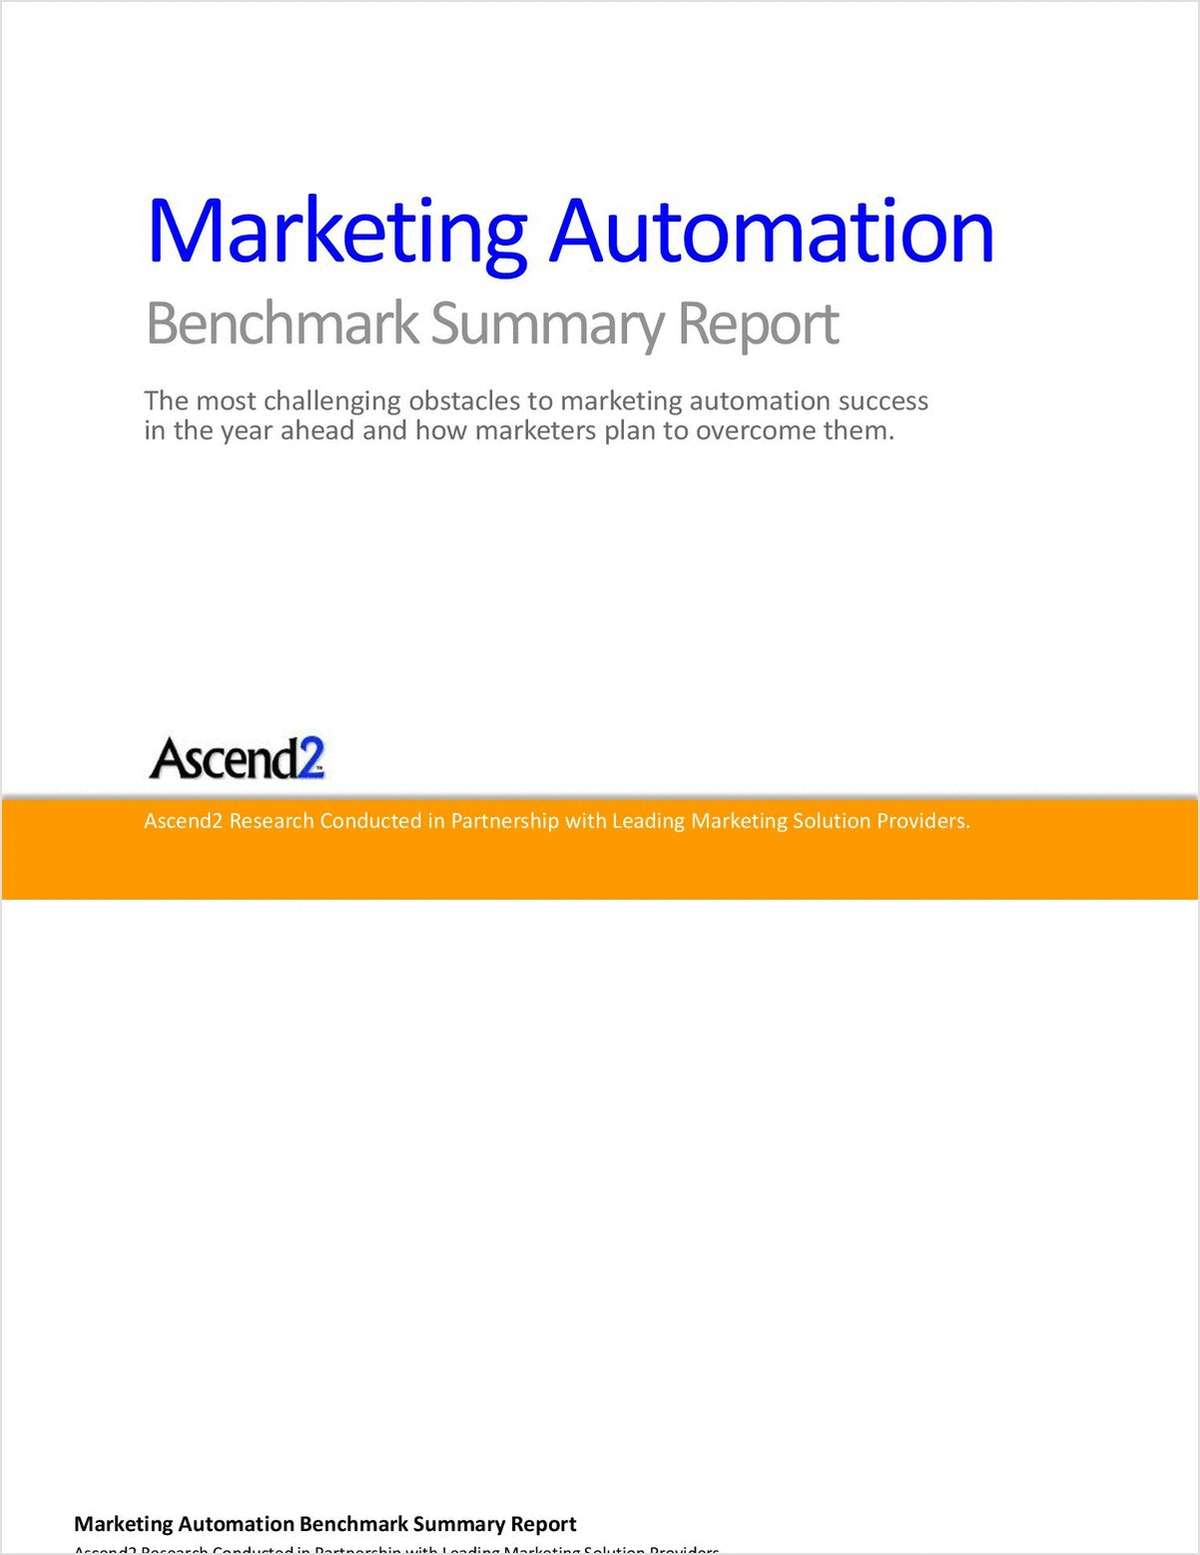 Marketing Automation -- Benchmark Summary Report